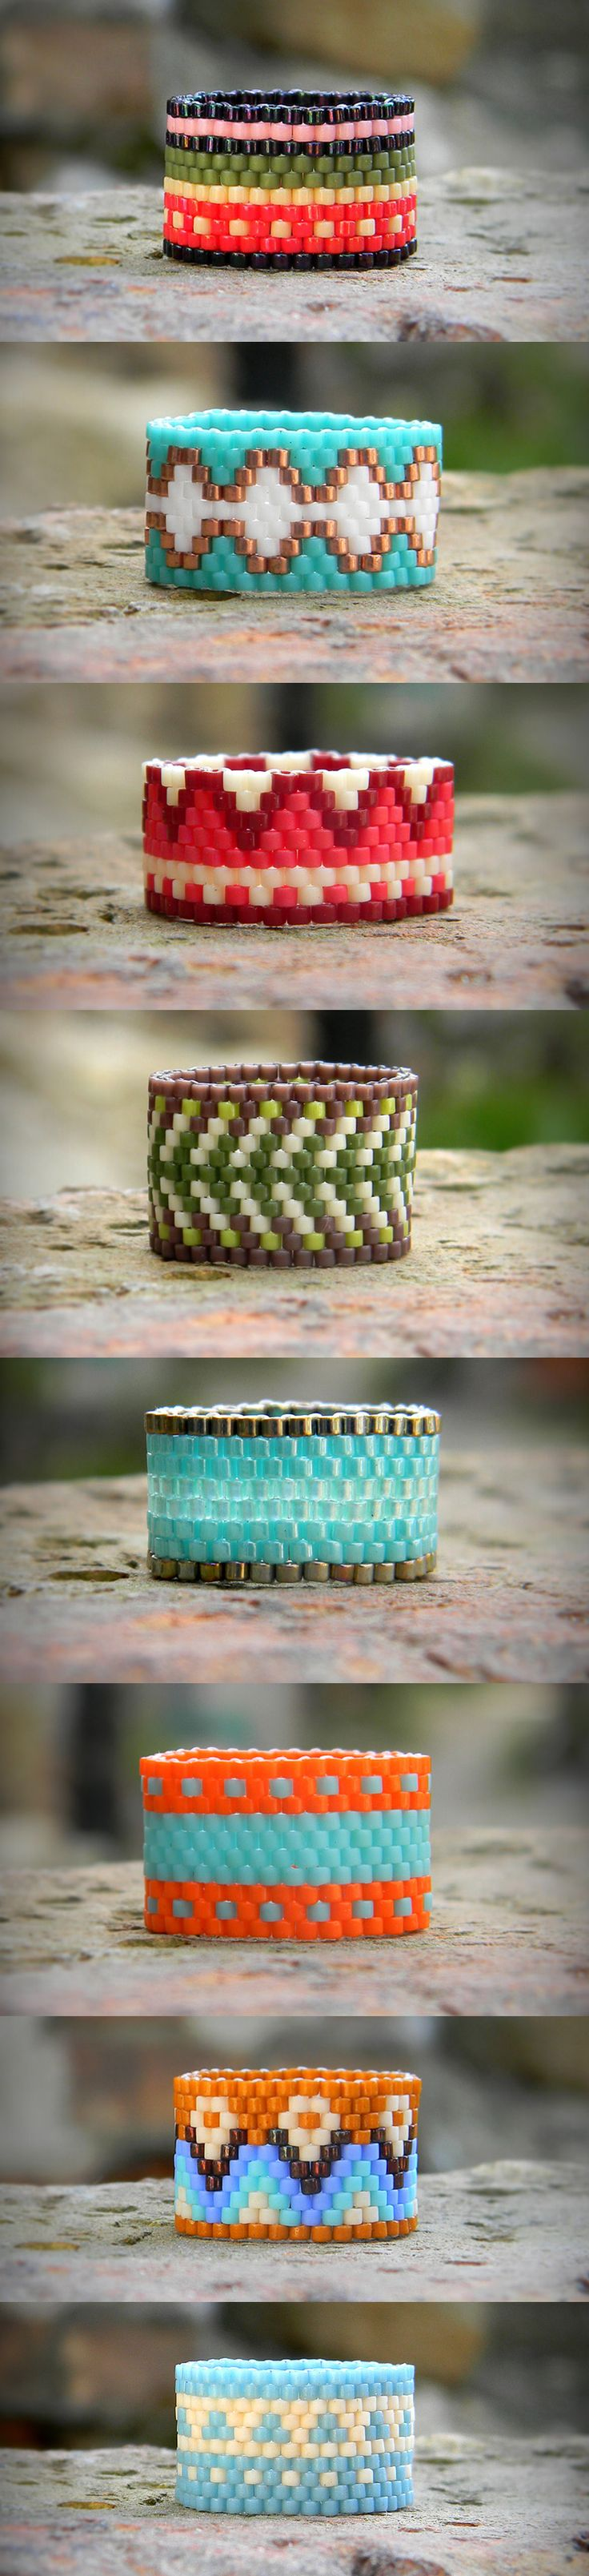 Peyote rings Seed Bead rings Wide band rings delica bead rings beaded rings beadwoven rings #beadwork #beading #peyotestitch #jewelry                                                                                                                                                                                 Más